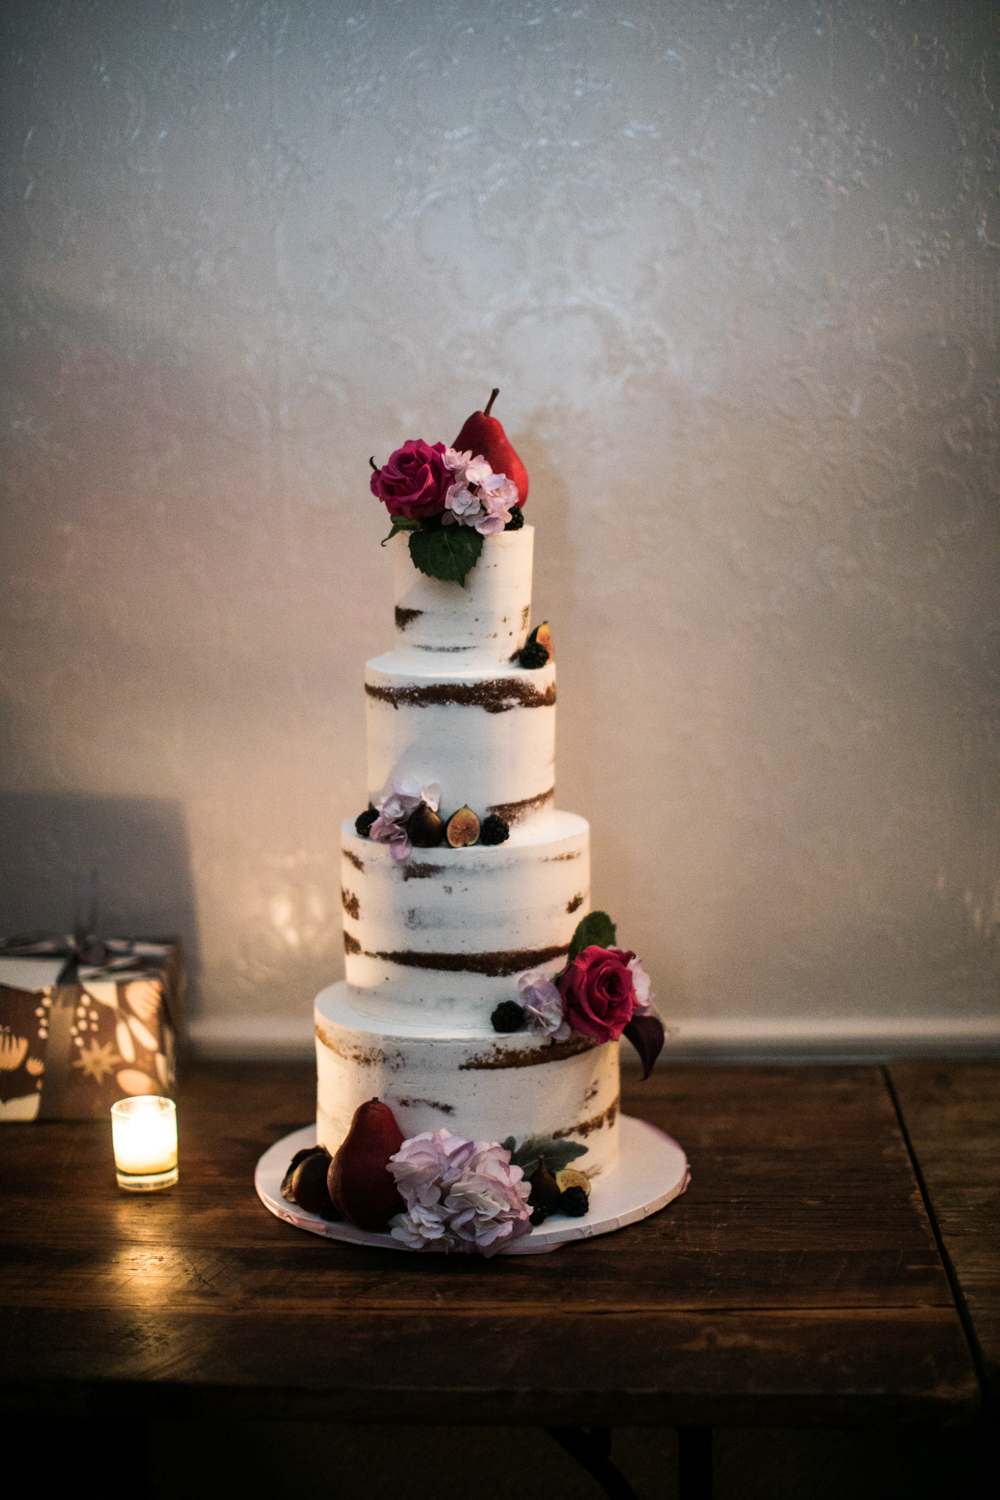 Four-tier wedding cake decorated with flowers and fruit.